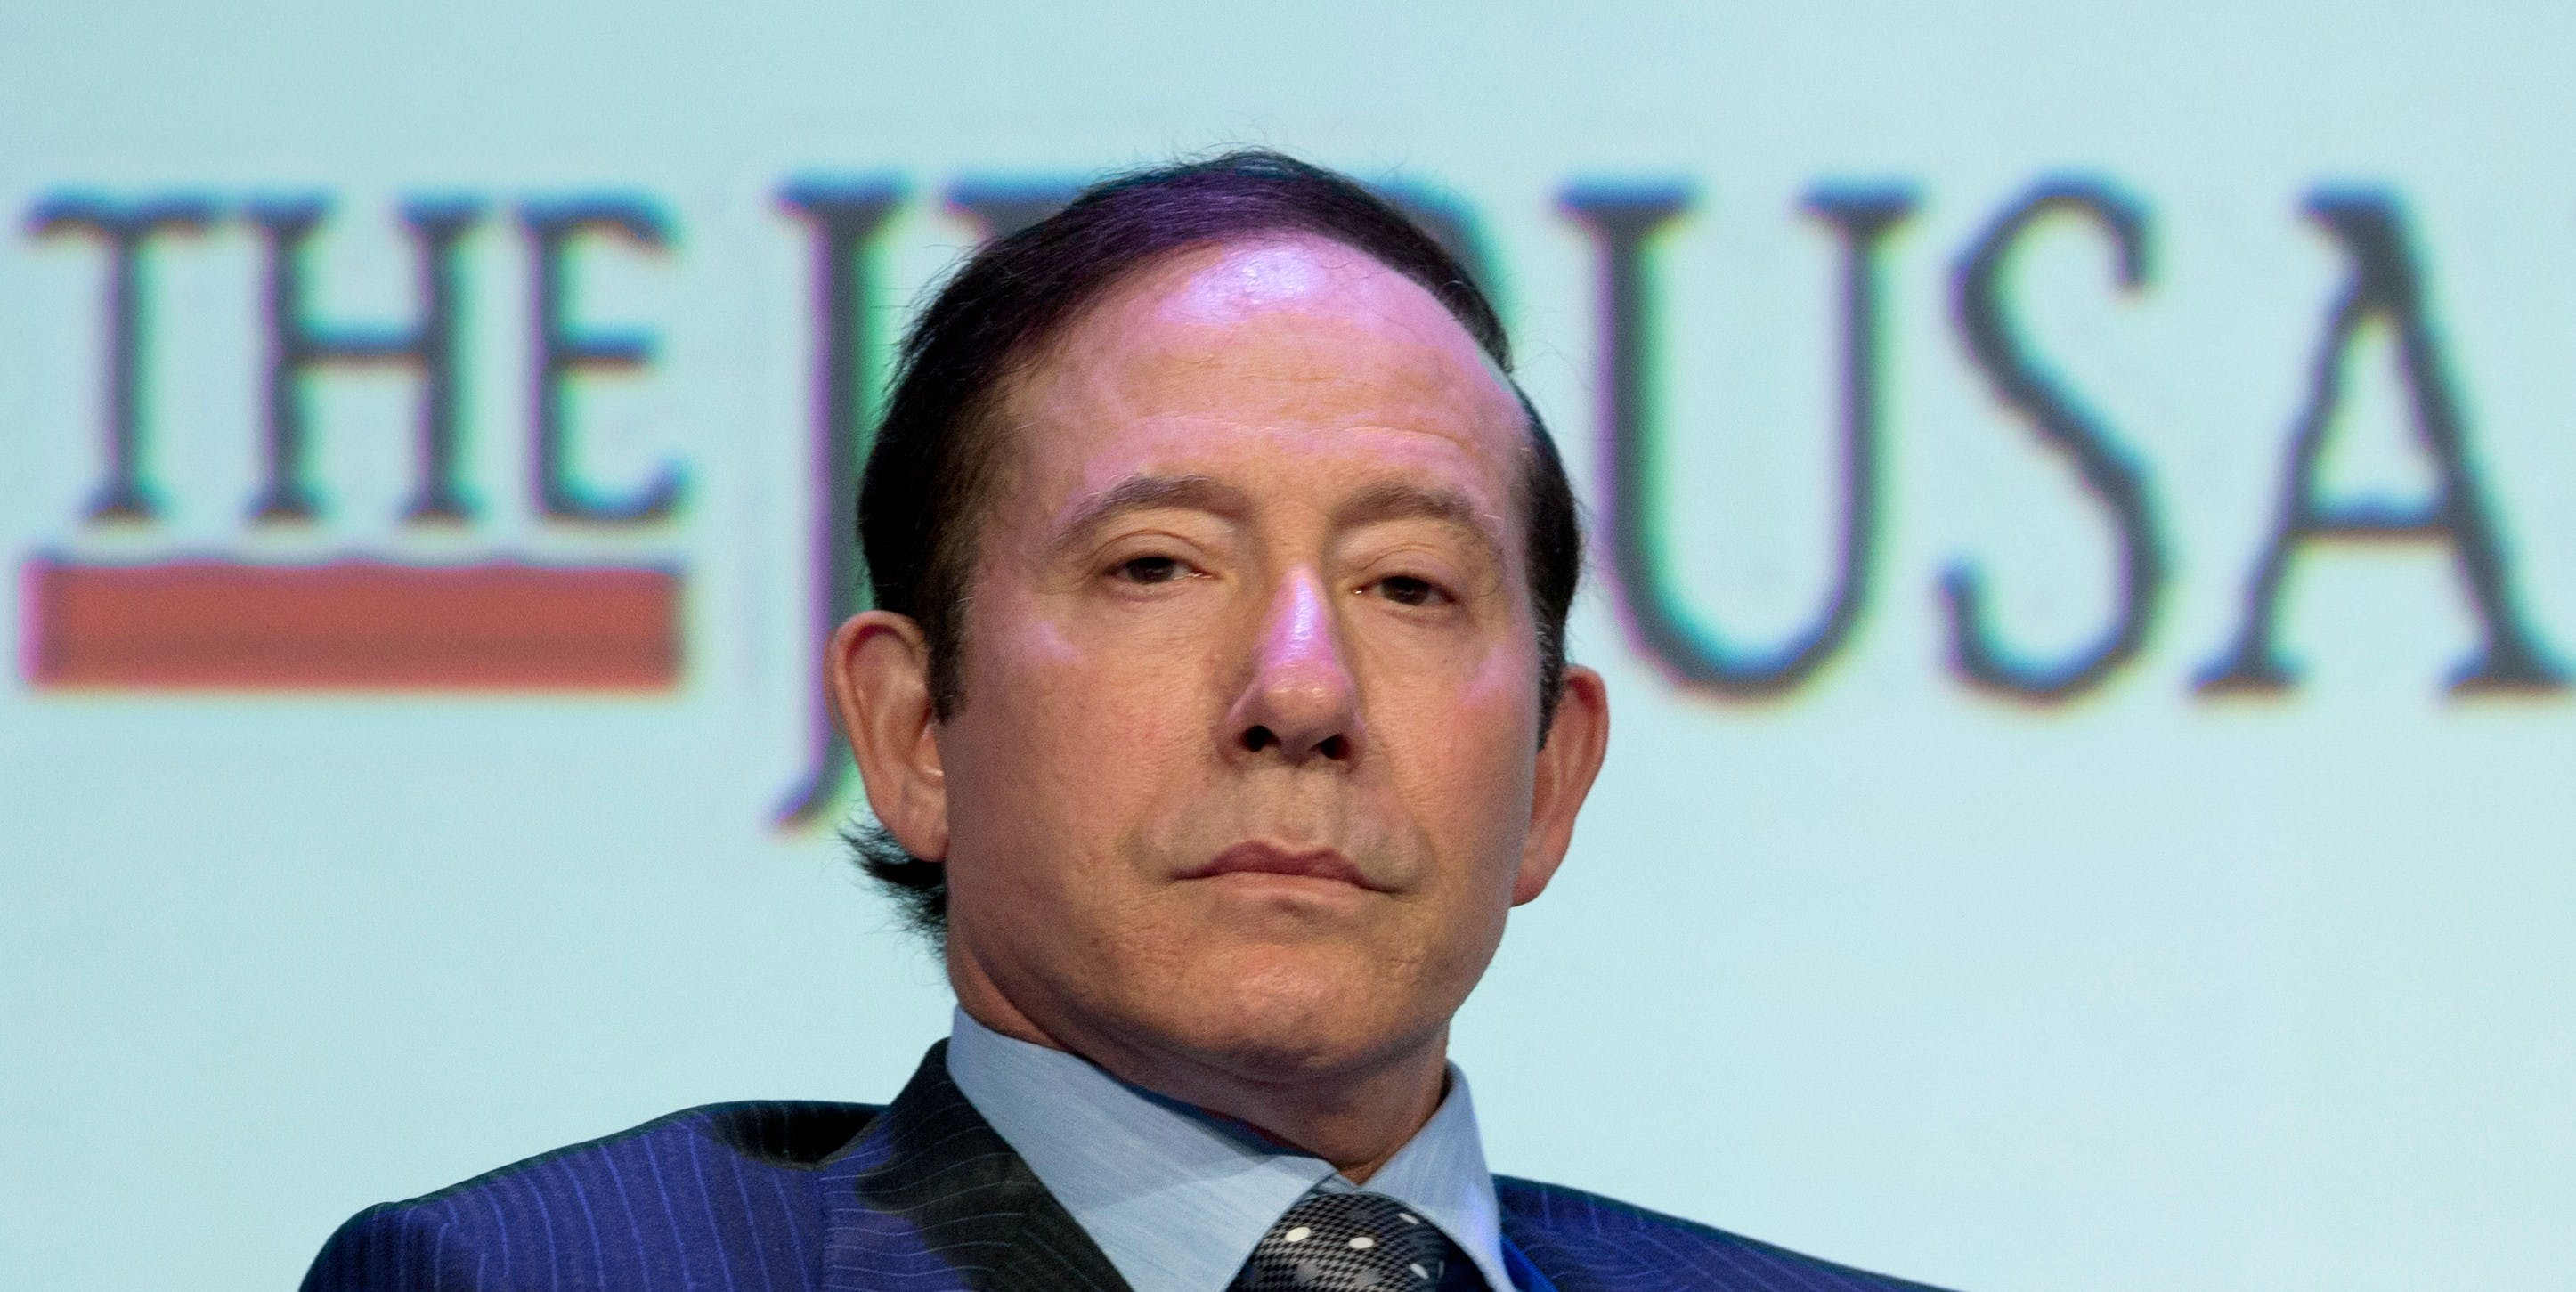 MARRIOTT MARQUIS TIMES SQUARE, NEW YORK, UNITED STATES - 2016/05/22: Adam Milstein Chairman of Israeli-American Council attends Jerusalem Post COnference 2016 at Marriott Marquis Times Square. (Photo by Lev Radin/Pacific Press/LightRocket via Getty Images)